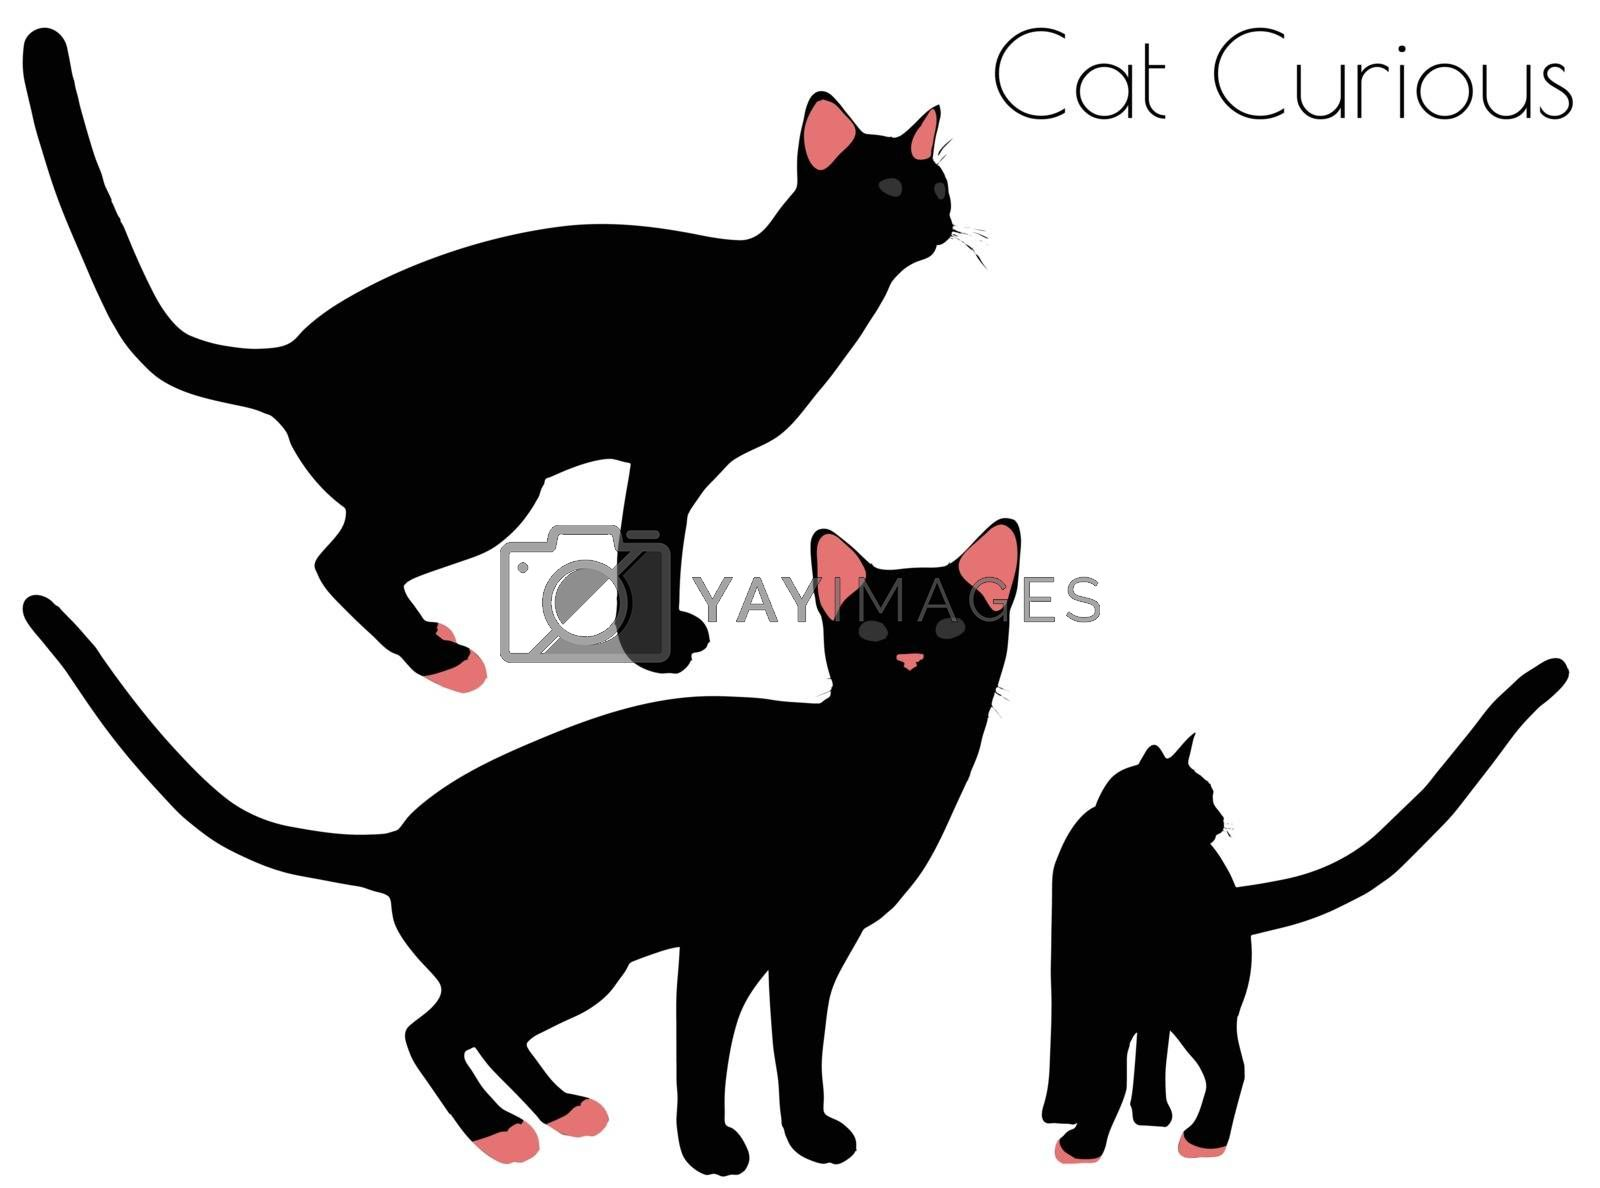 EPS 10 vector illustration of cat silhouette in Curious Pose